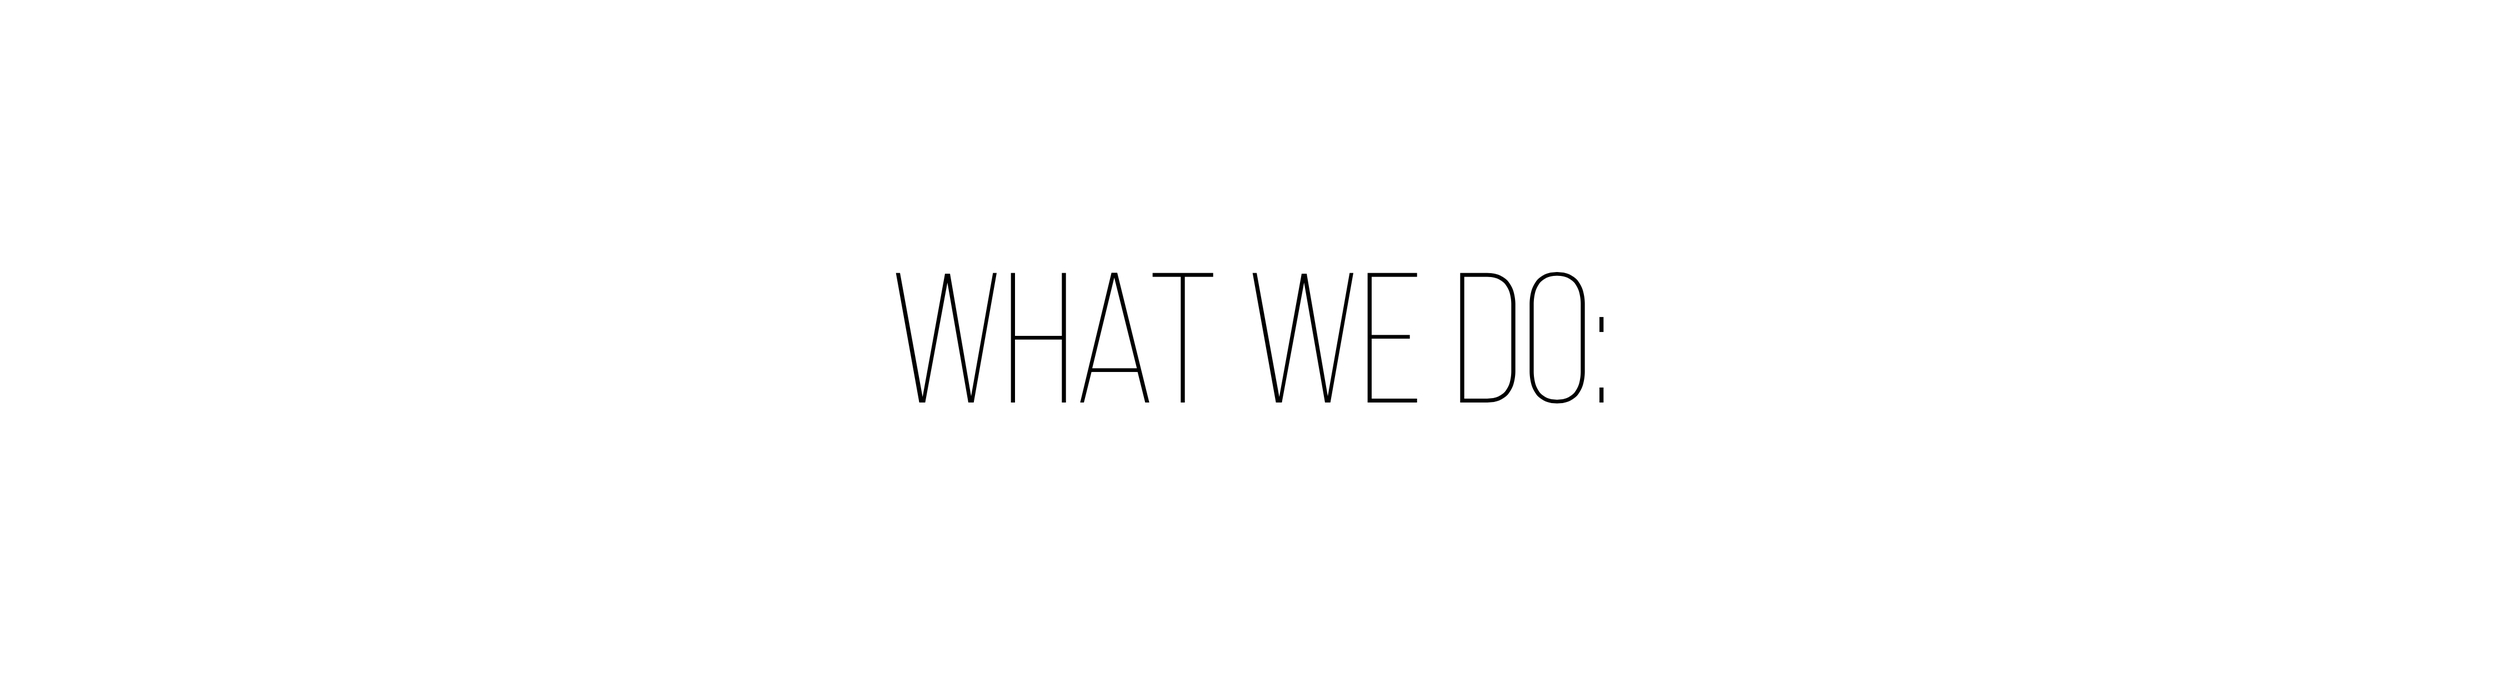 what we do header.jpg